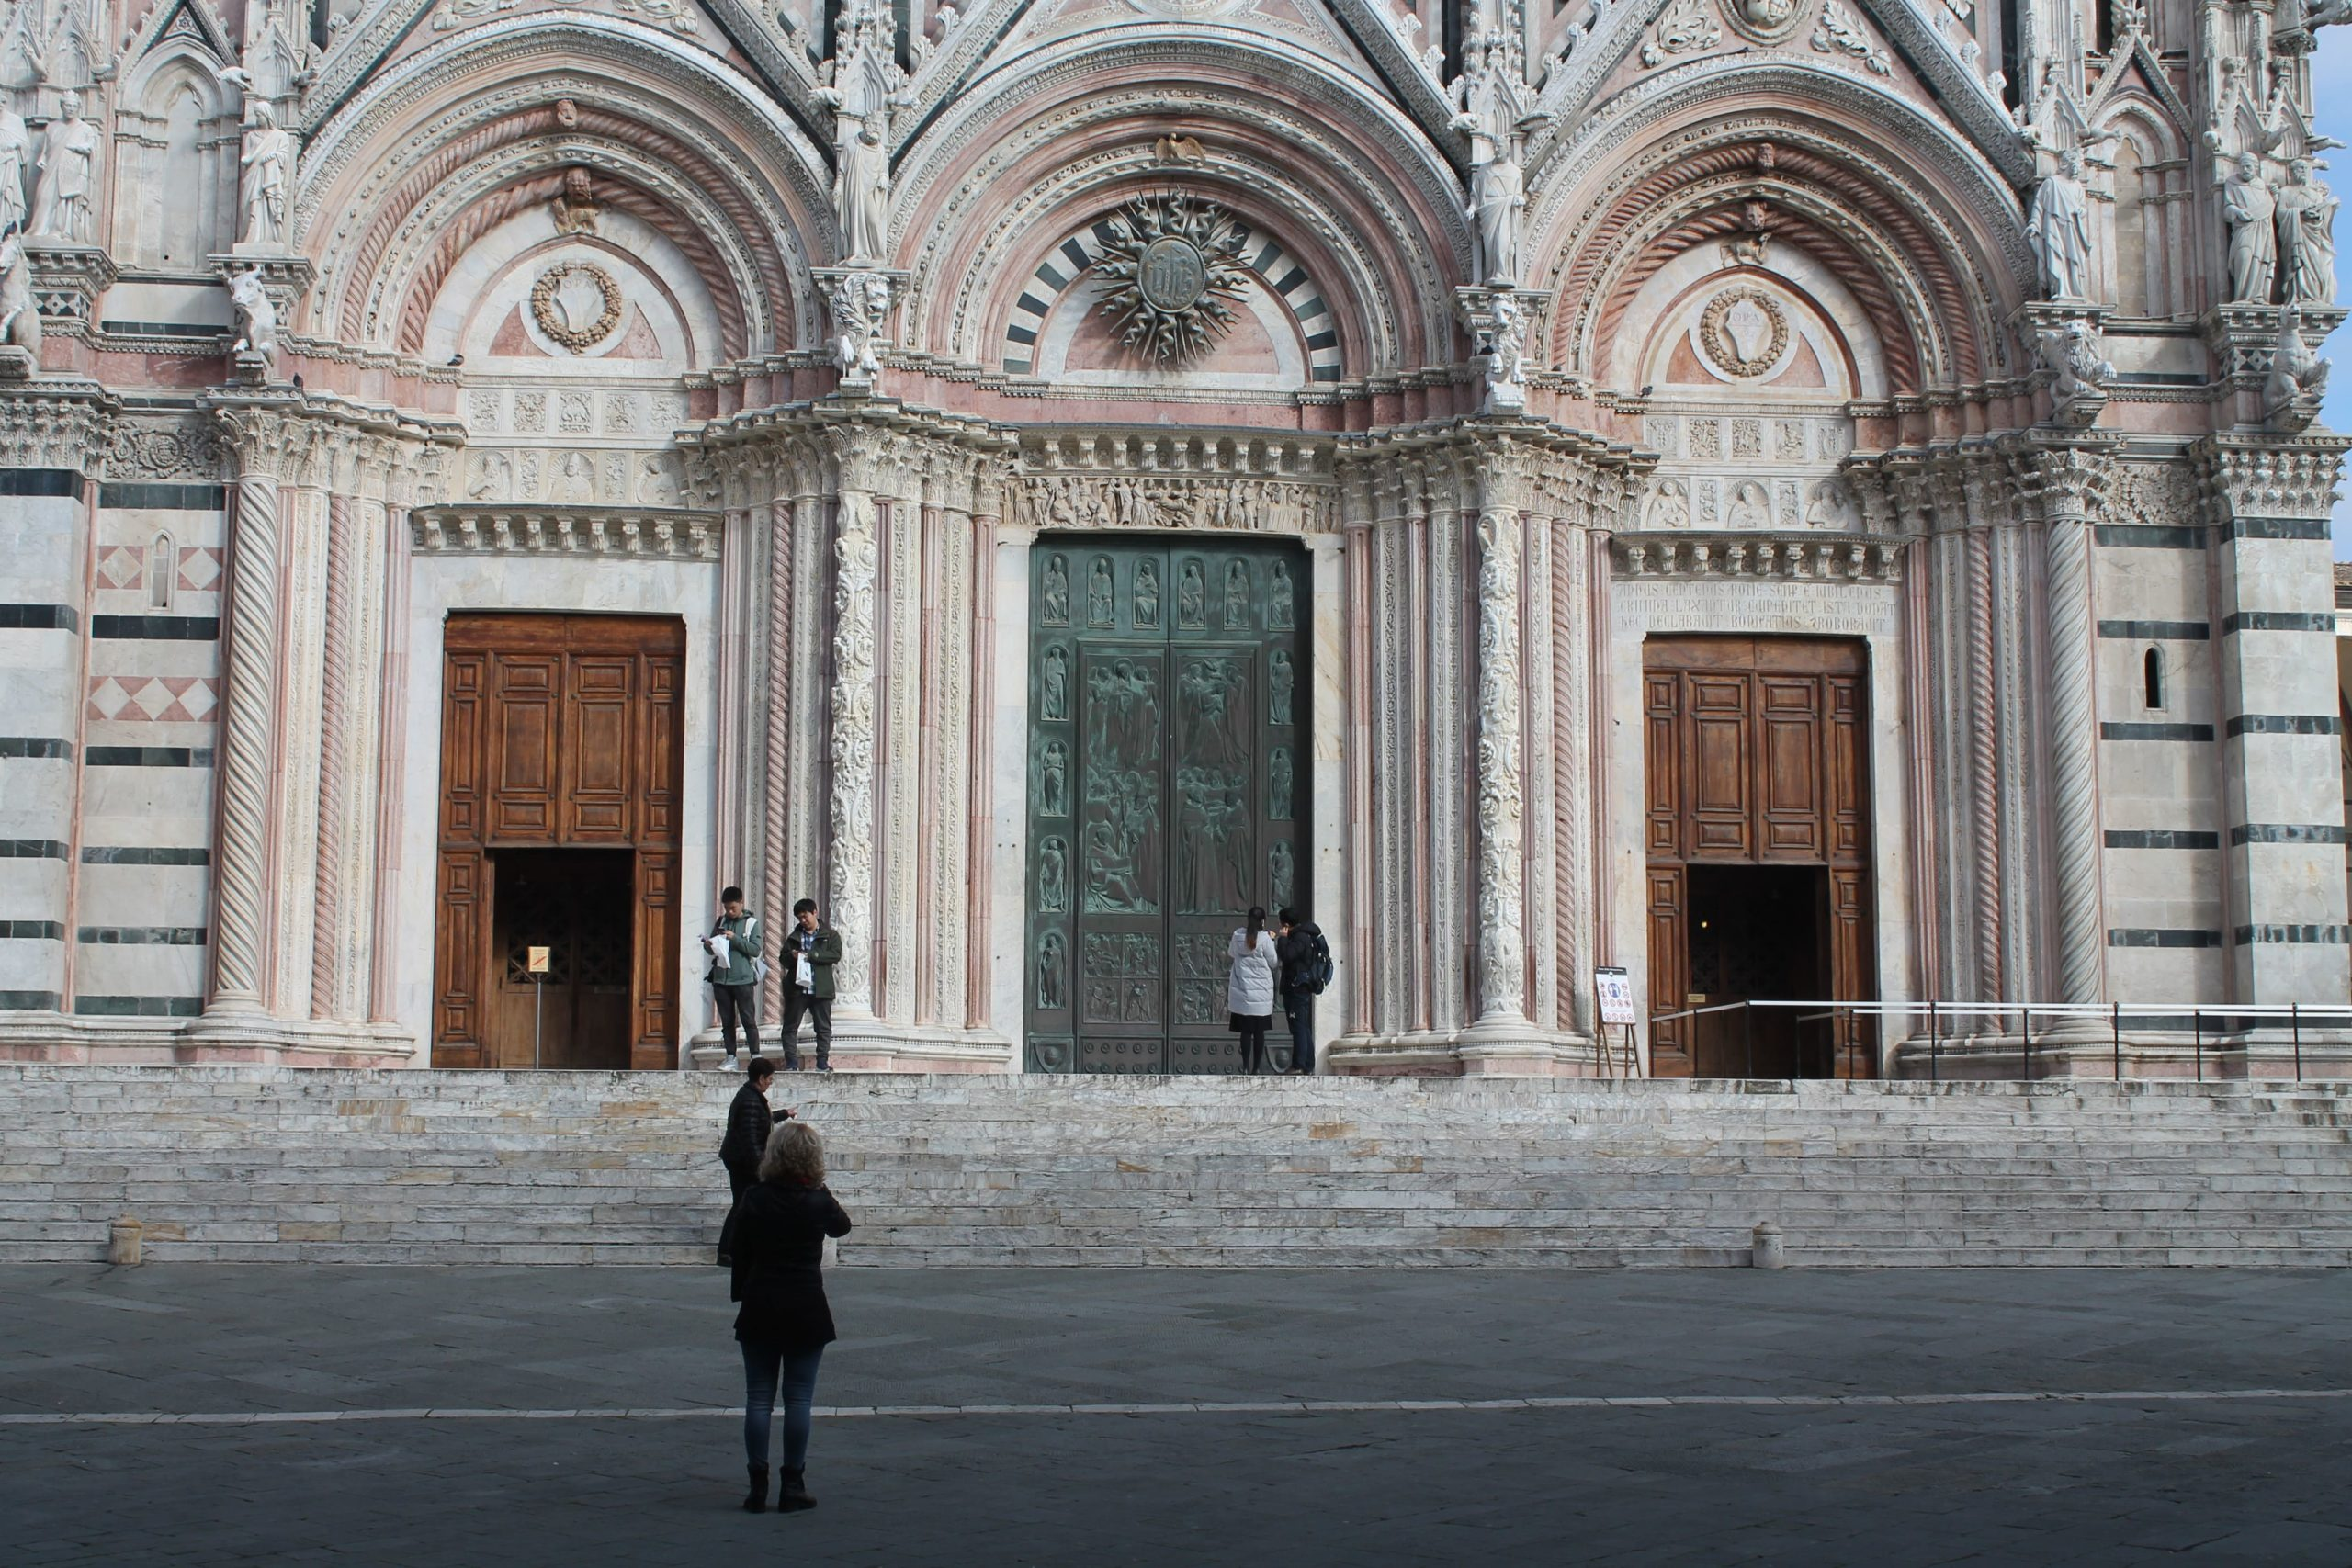 The Duomo of Siena or Siena Cathedral.